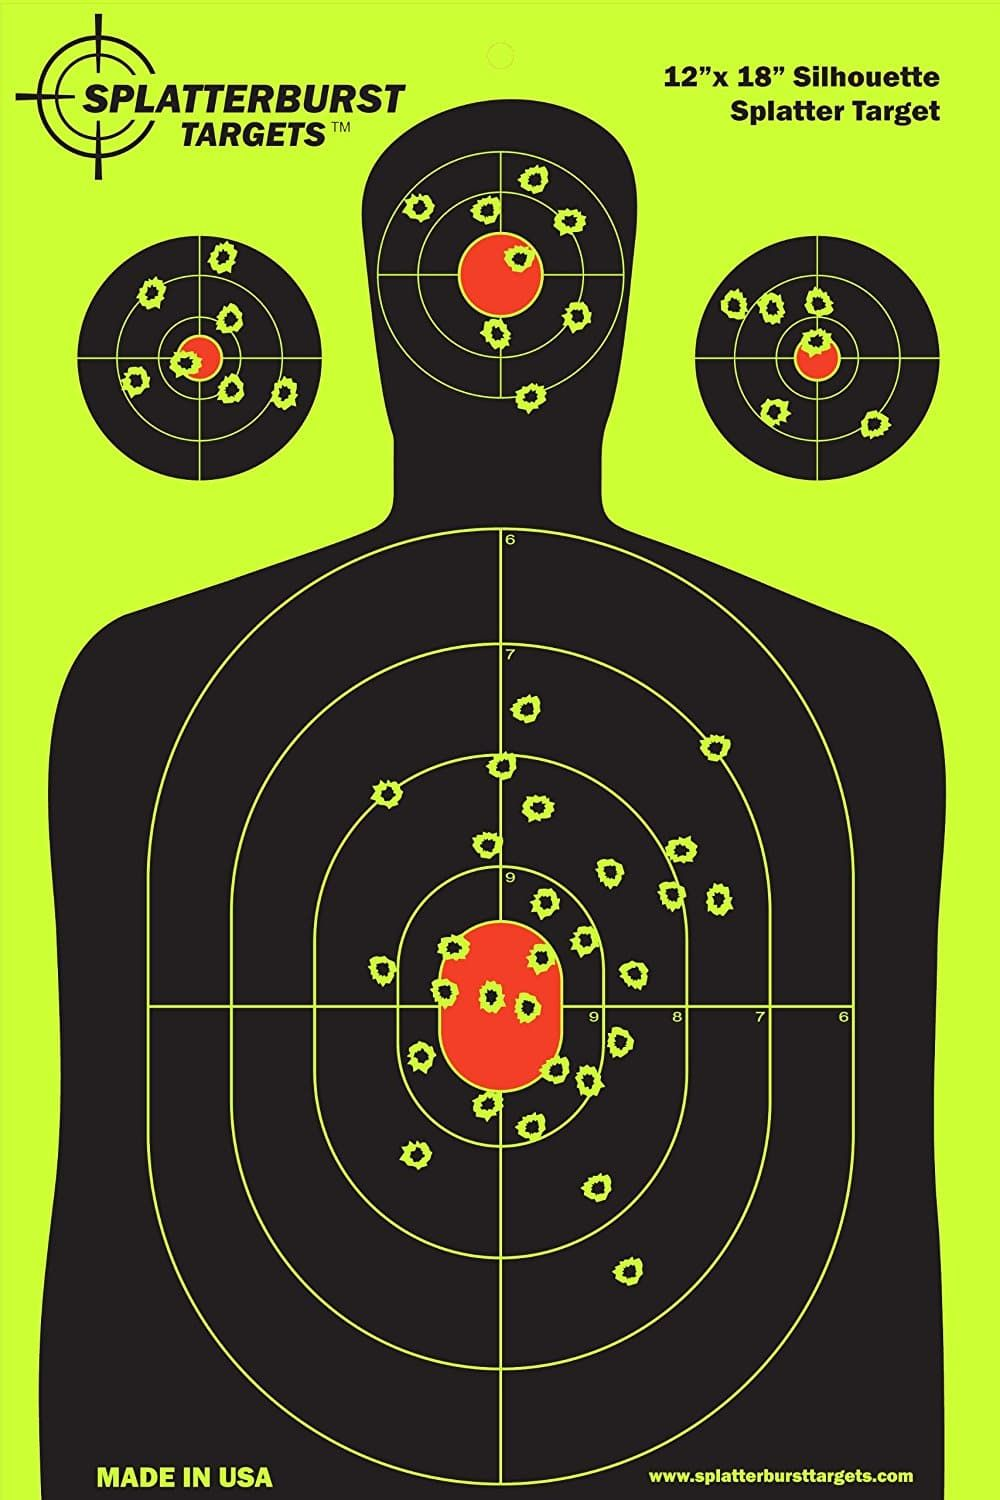 Top 10 Best Shooting Target in 2020 - Reviews - HQReview | Shooting targets,  Paper targets, Target